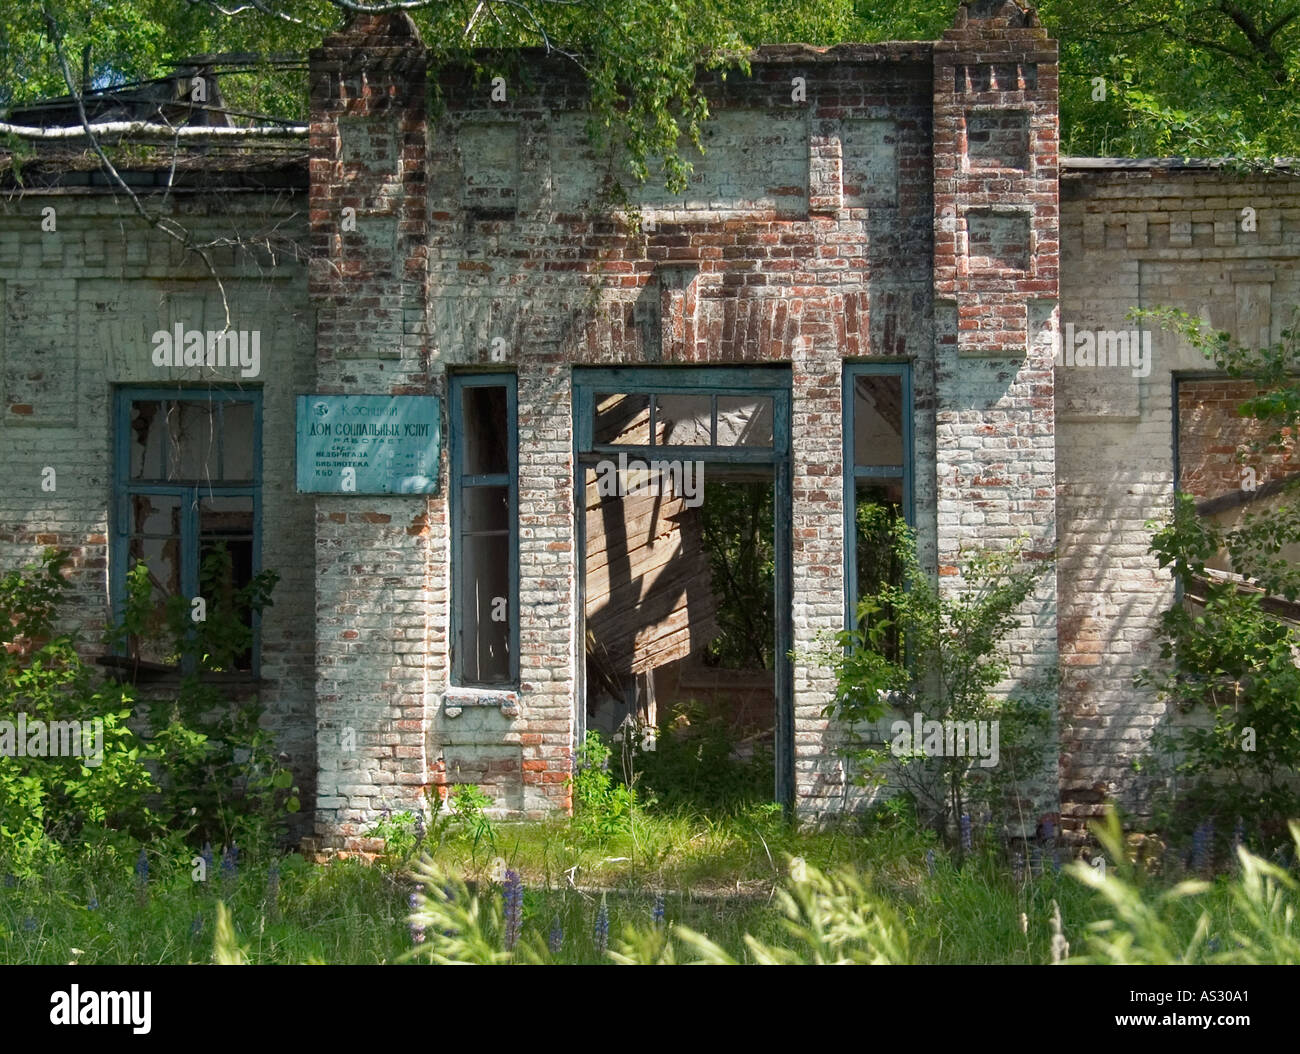 Derelict property in Chernobyl exclusion zone near state border of Ukraine and Belarus - Stock Image